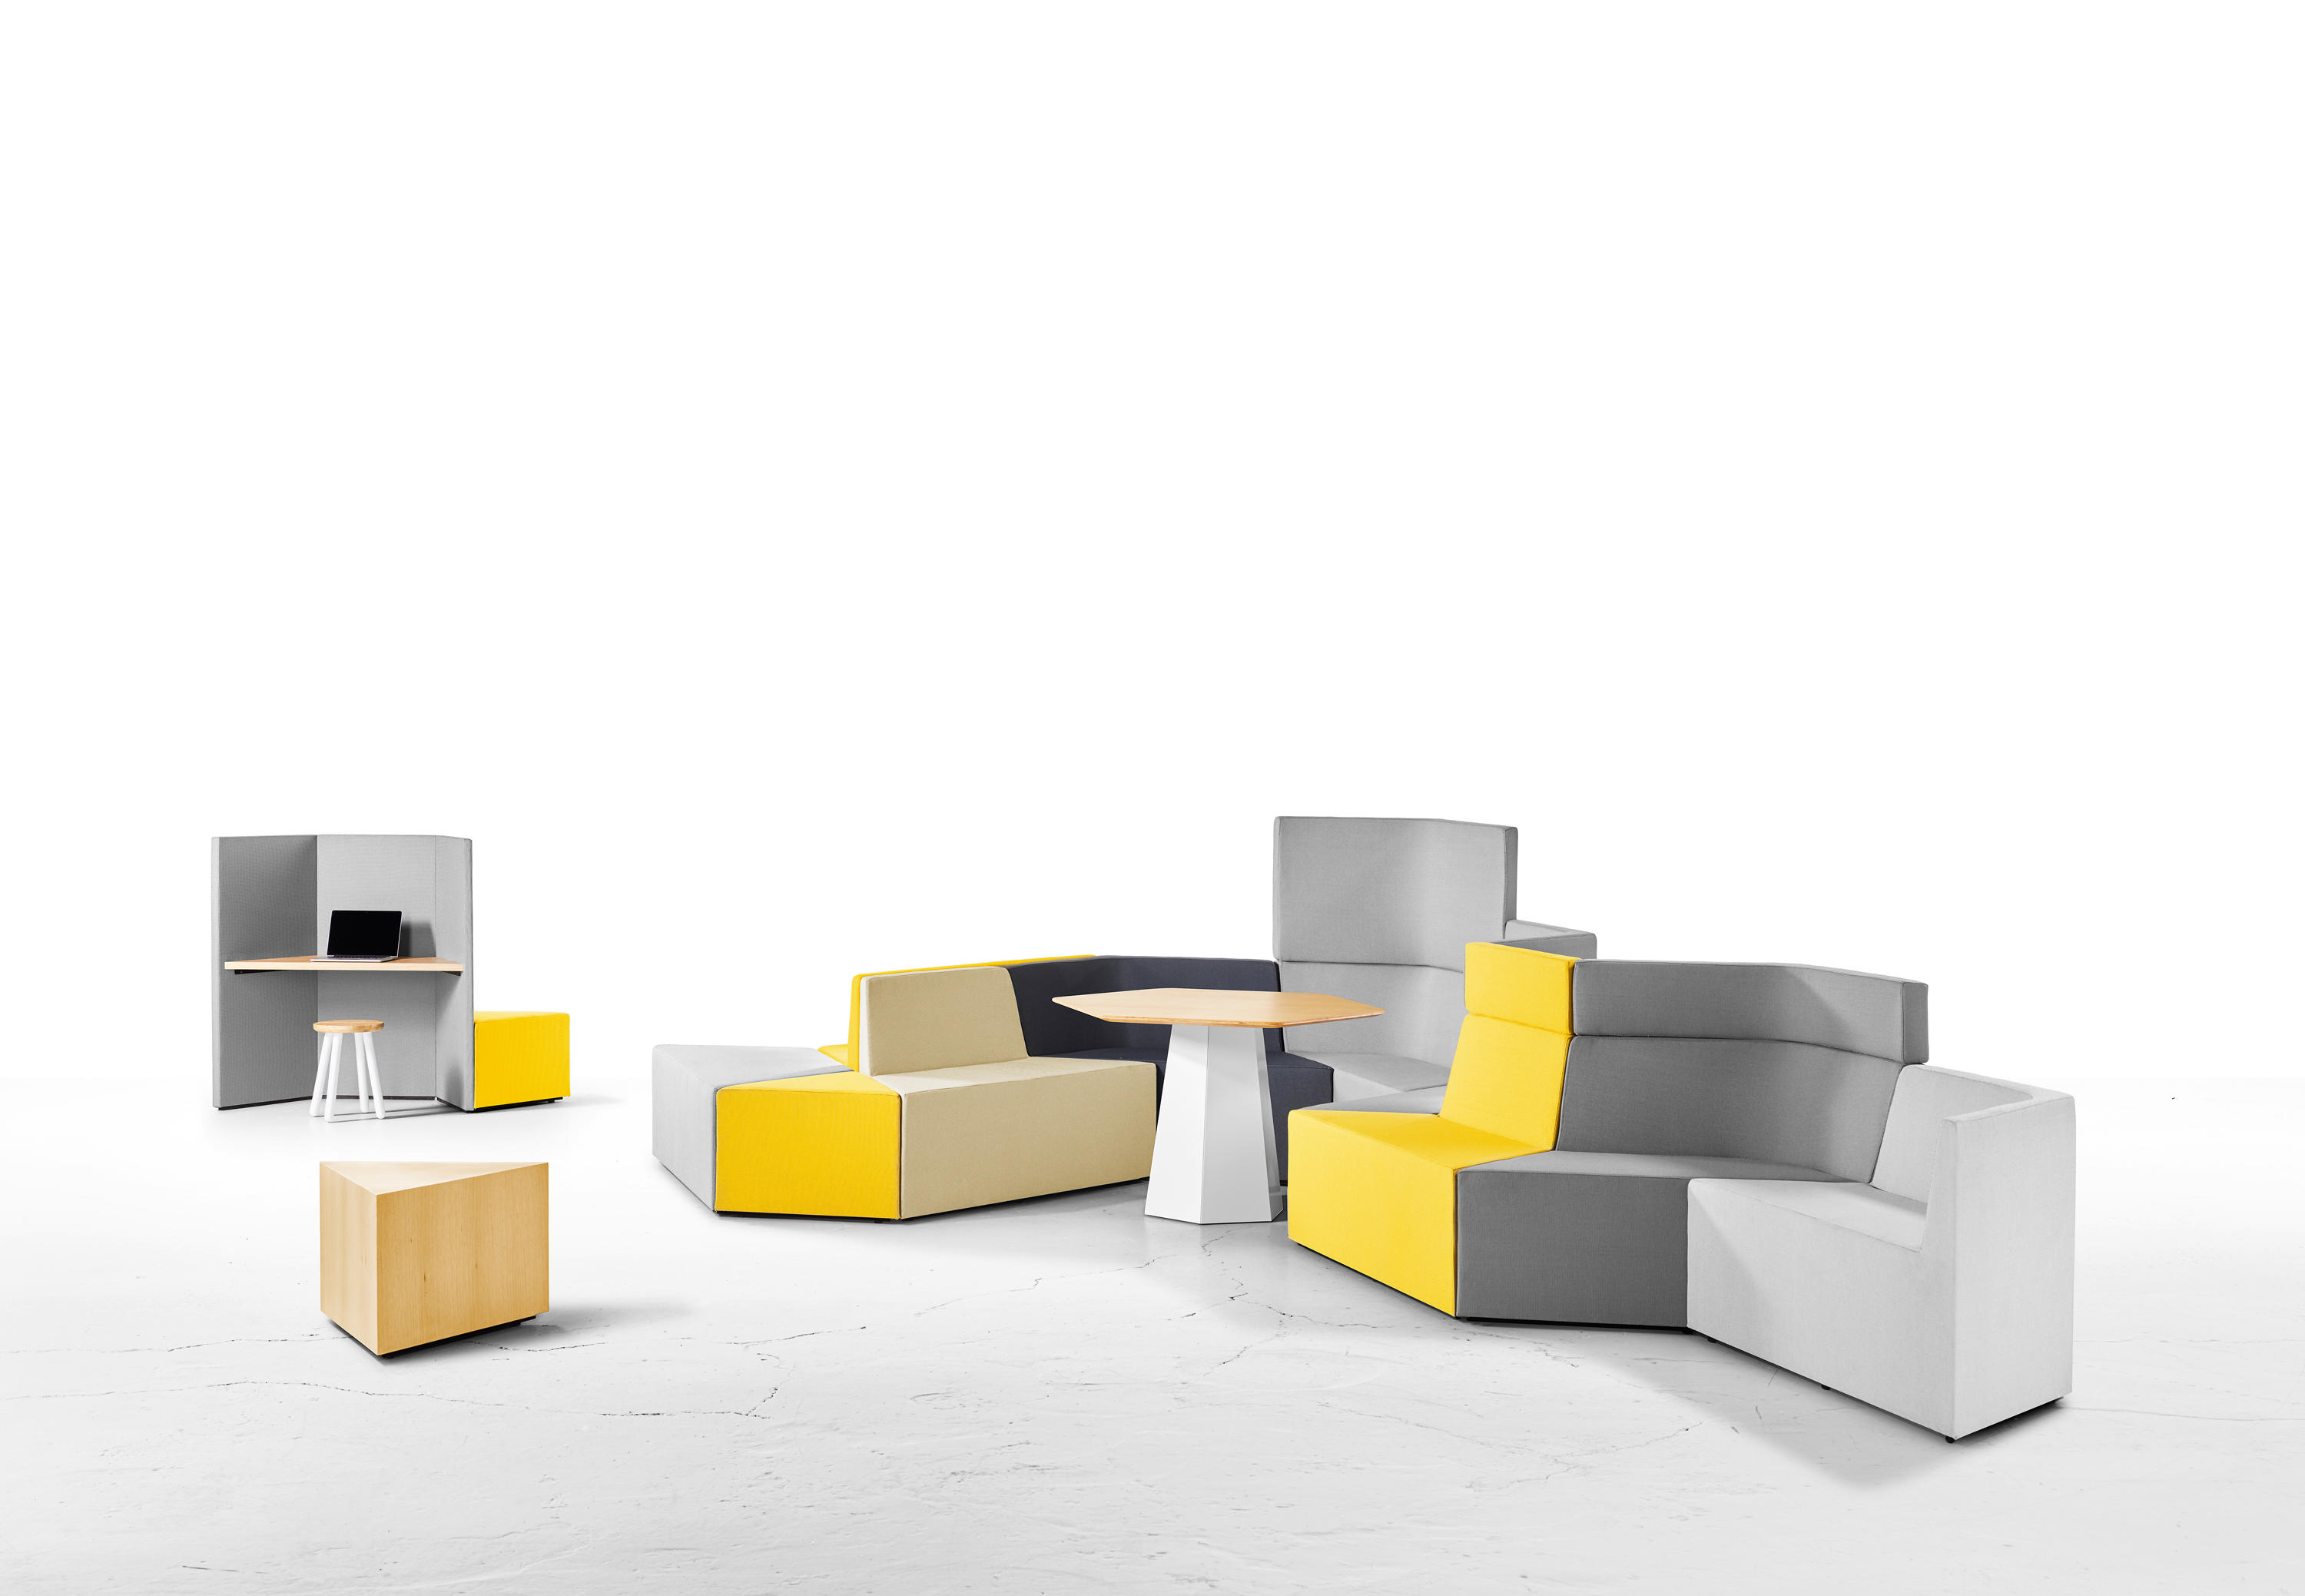 Prisma Modular Seating Elements From Derlot Editions